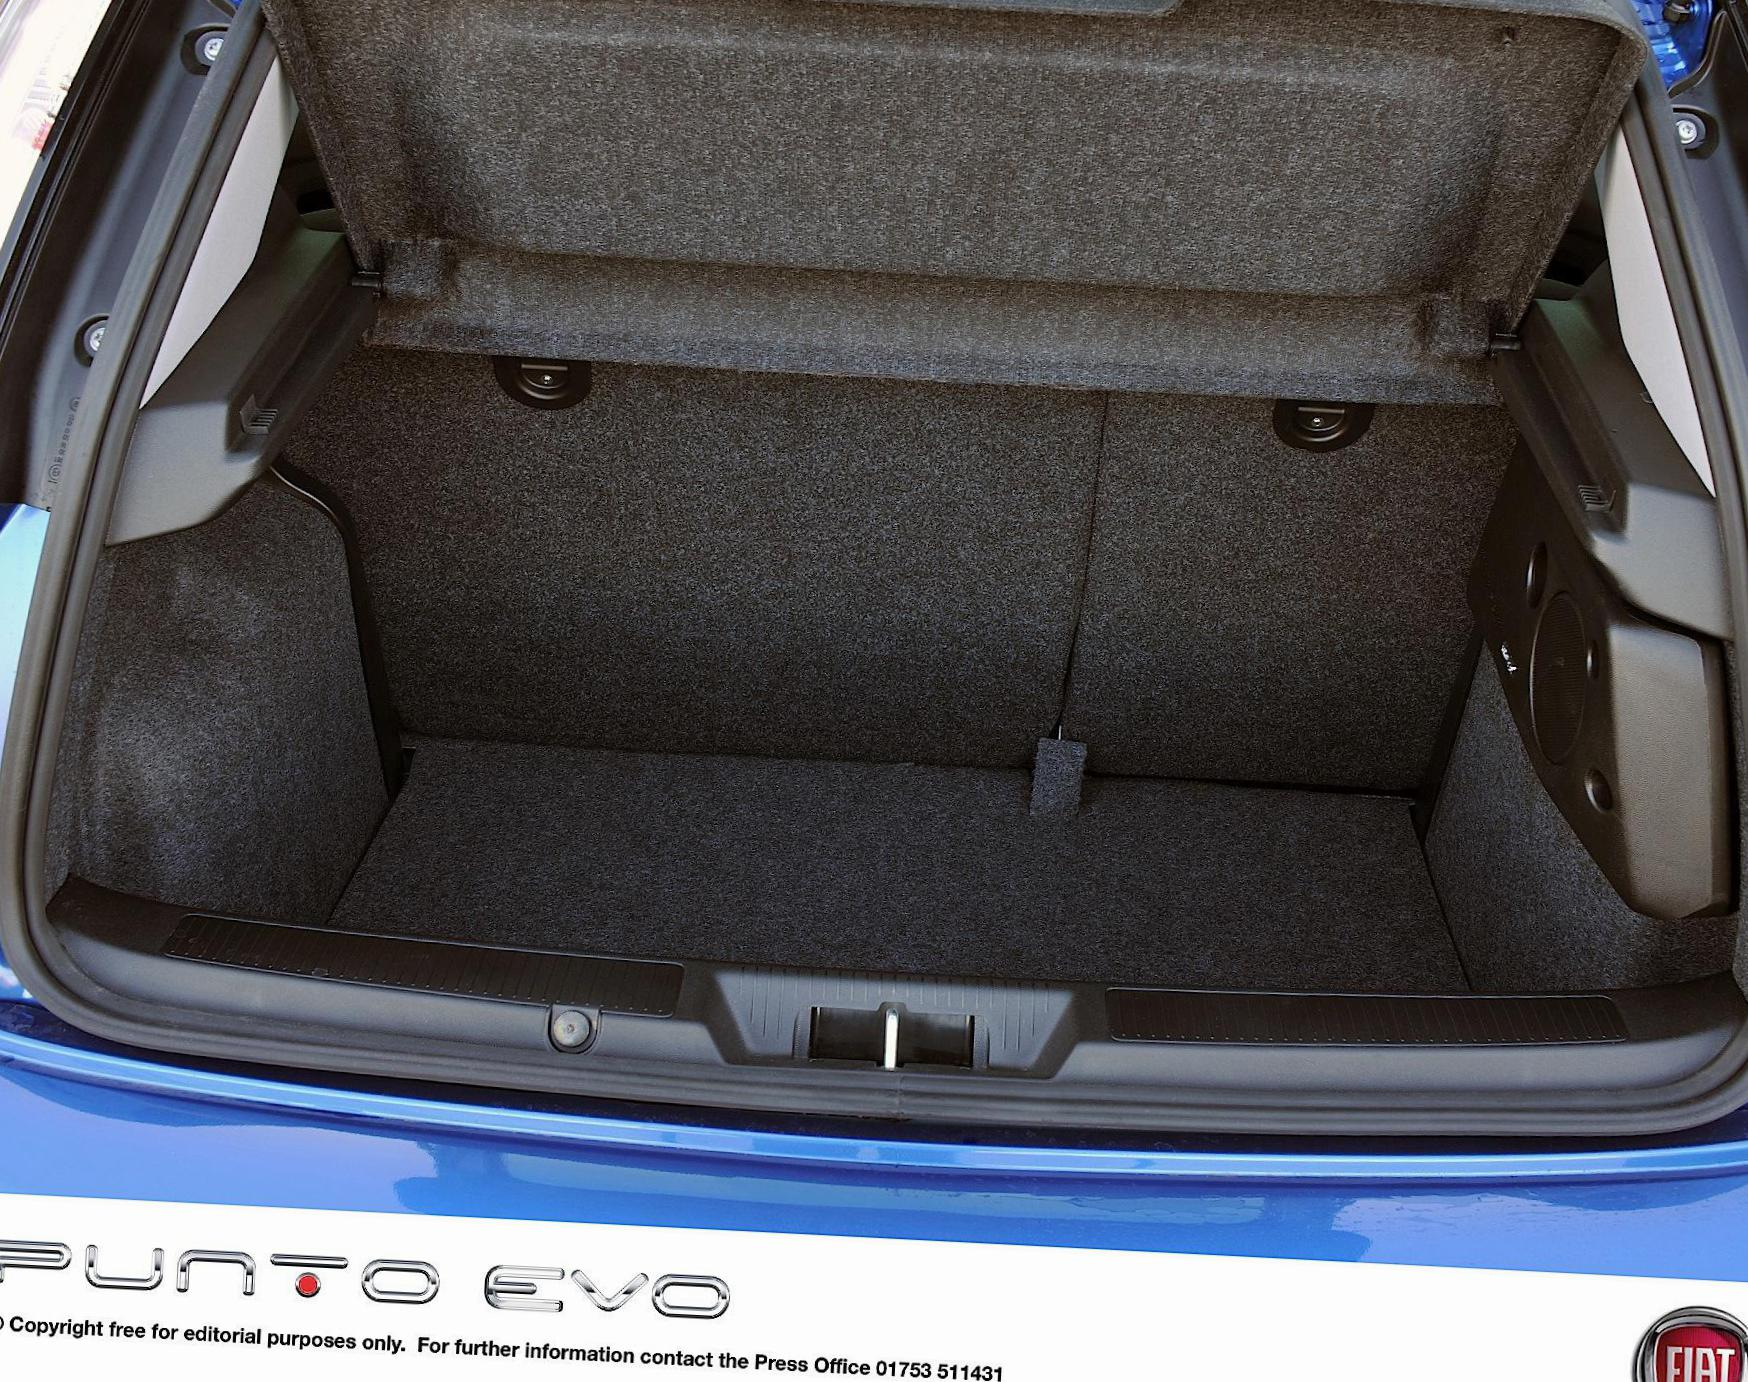 Fiat Punto Evo 5 doors price sedan